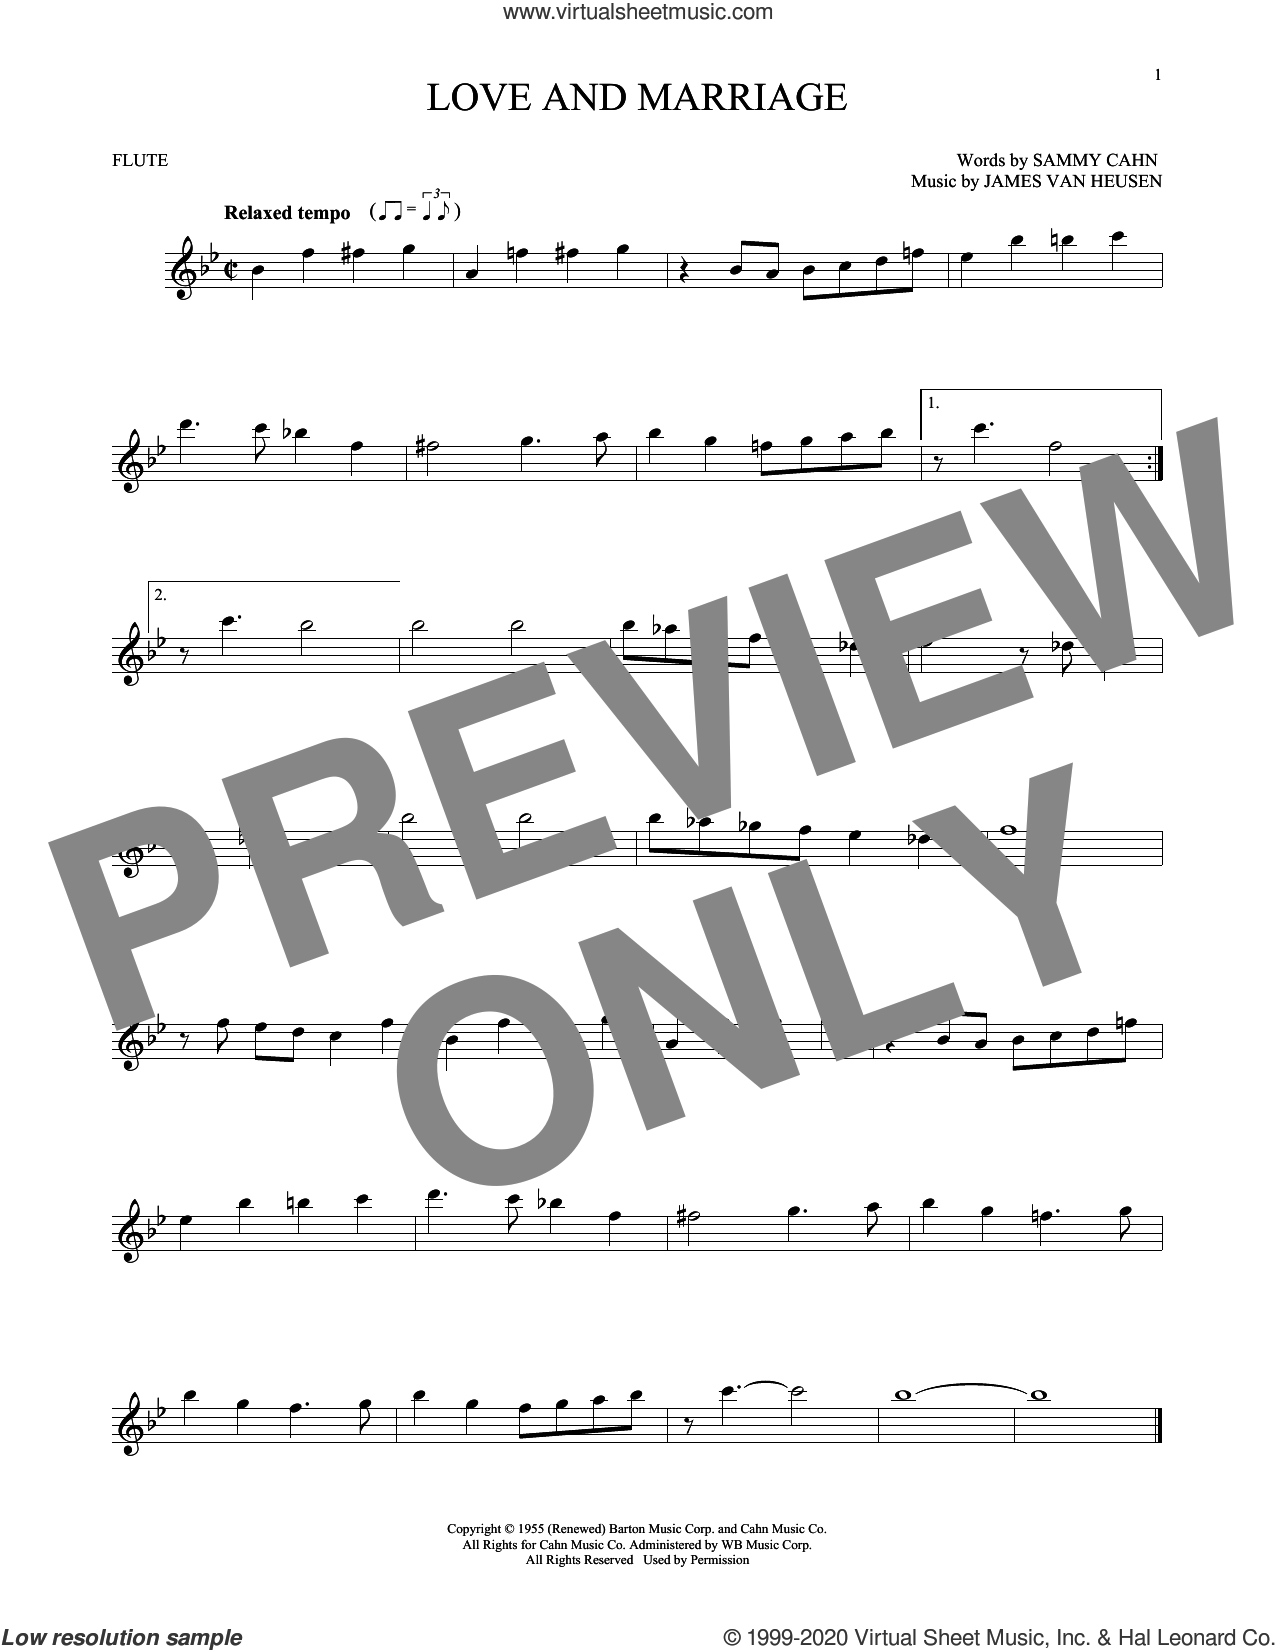 Love And Marriage sheet music for flute solo by Sammy Cahn and Jimmy van Heusen, intermediate skill level